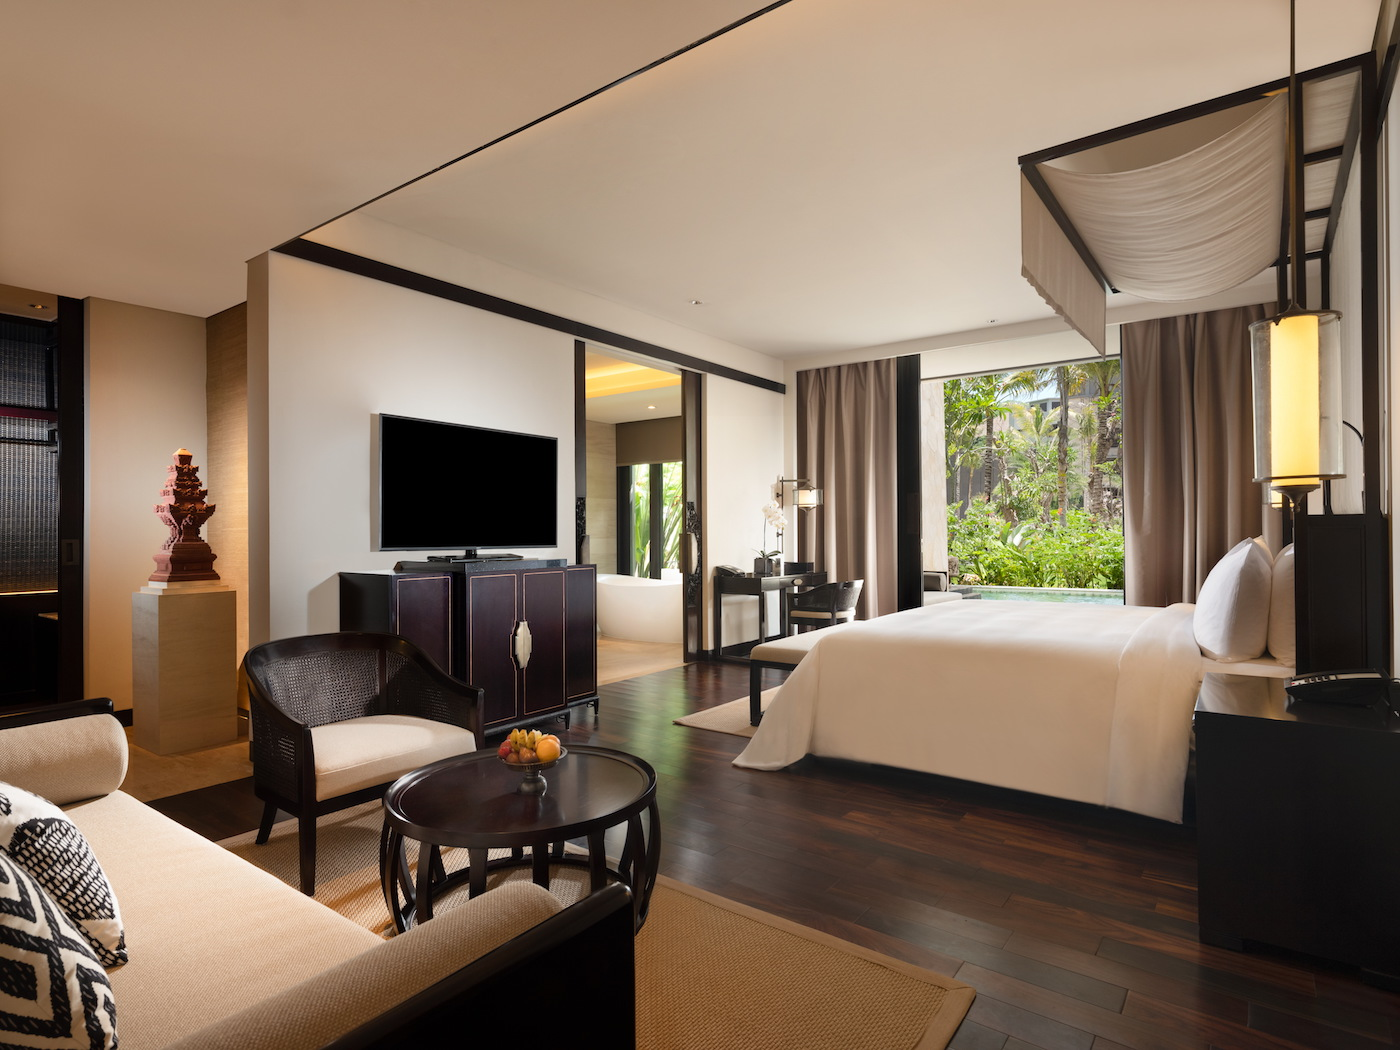 Grand Deluxe suite with lagoon view at Apurva Kempinski Bali